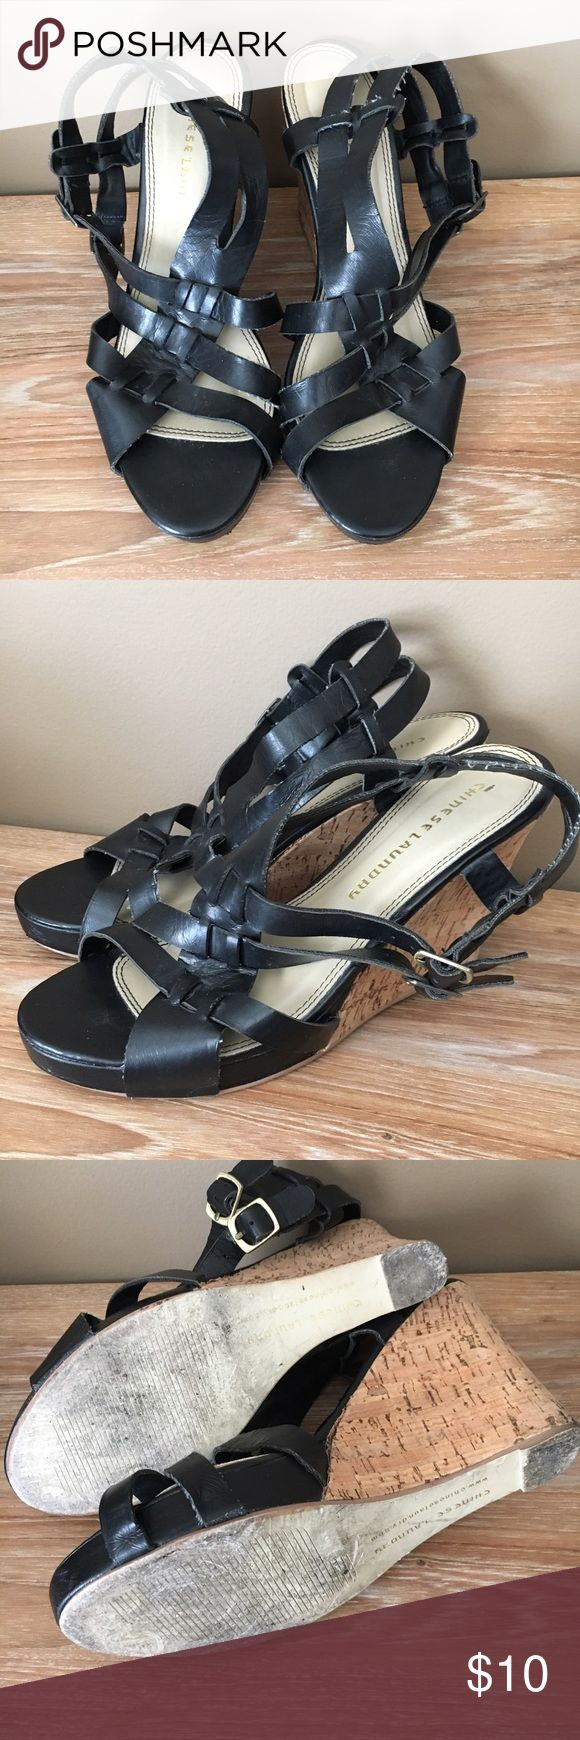 Chinese Laundry 9M Black Strappy Cork Wedge Heels In good used condition! Some stray frayed strings here and there but tons of life left in these shoes! They go with absolutely everything and are a staple for Spring and Summer. Chinese Laundry Shoes Wedges